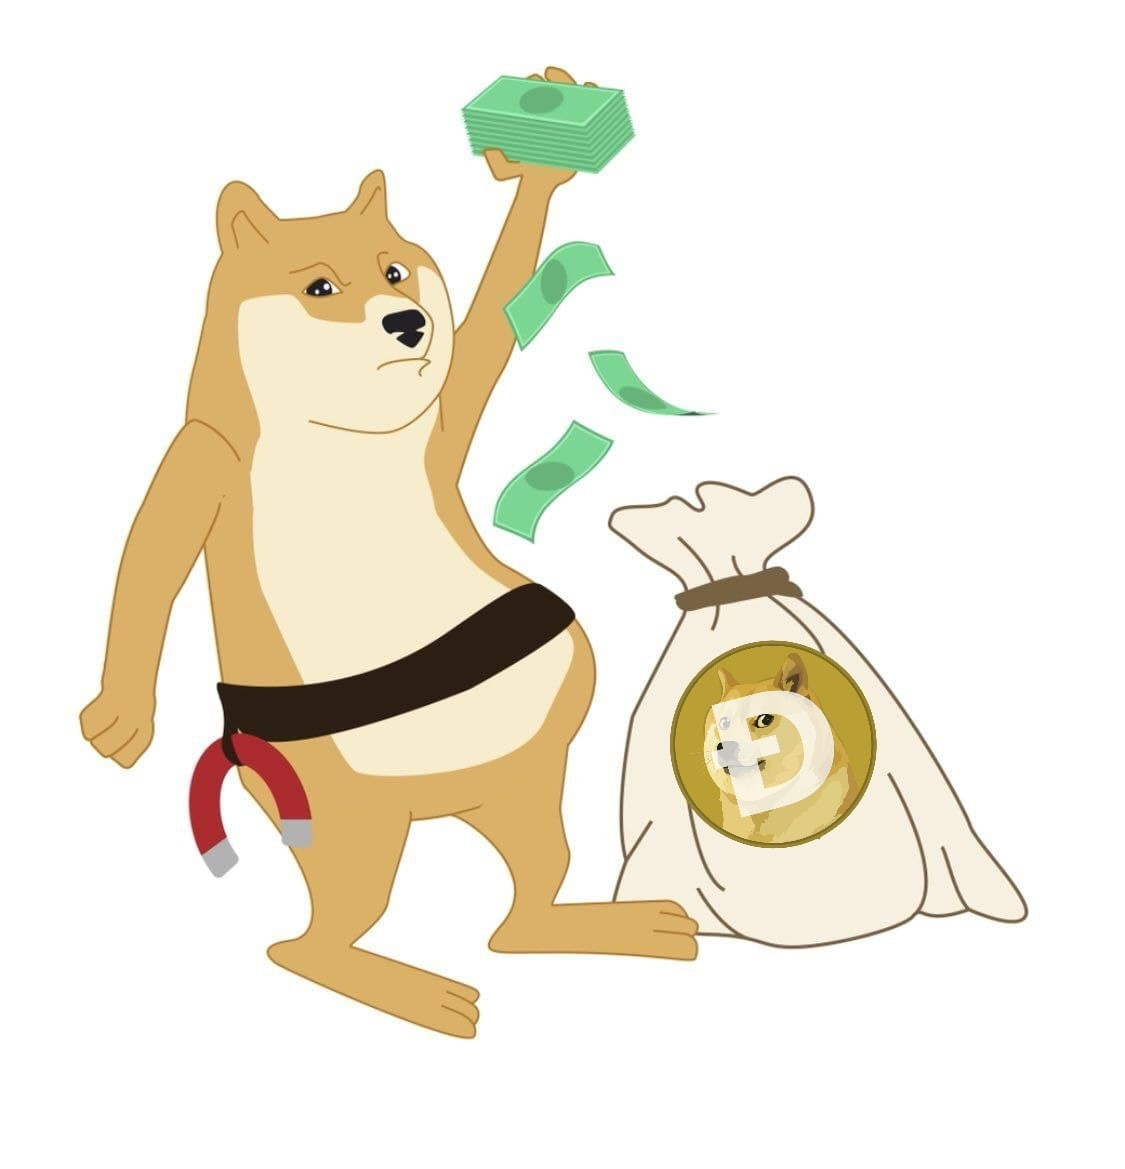 Loooooool, someone has opened massive shorts on $DOGE, let's squeeze them boys and make them buy #dogecoin at double the price! #wallstreetbets